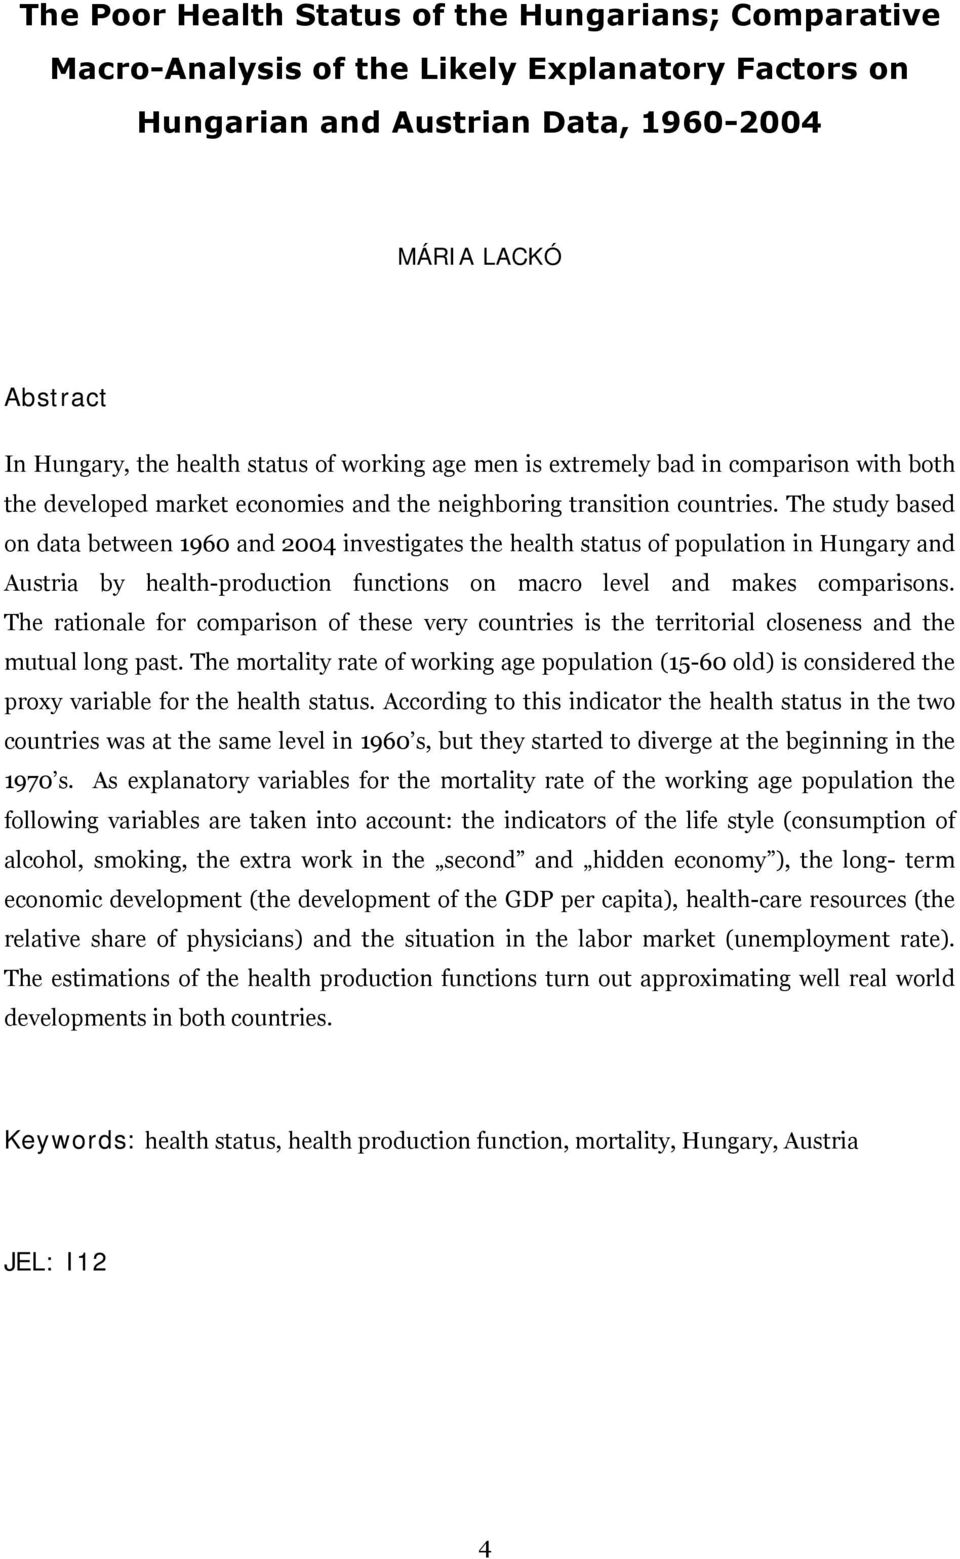 The study based on data between 1960 and 2004 investigates the health status of population in Hungary and Austria by health-production functions on macro level and makes comparisons.